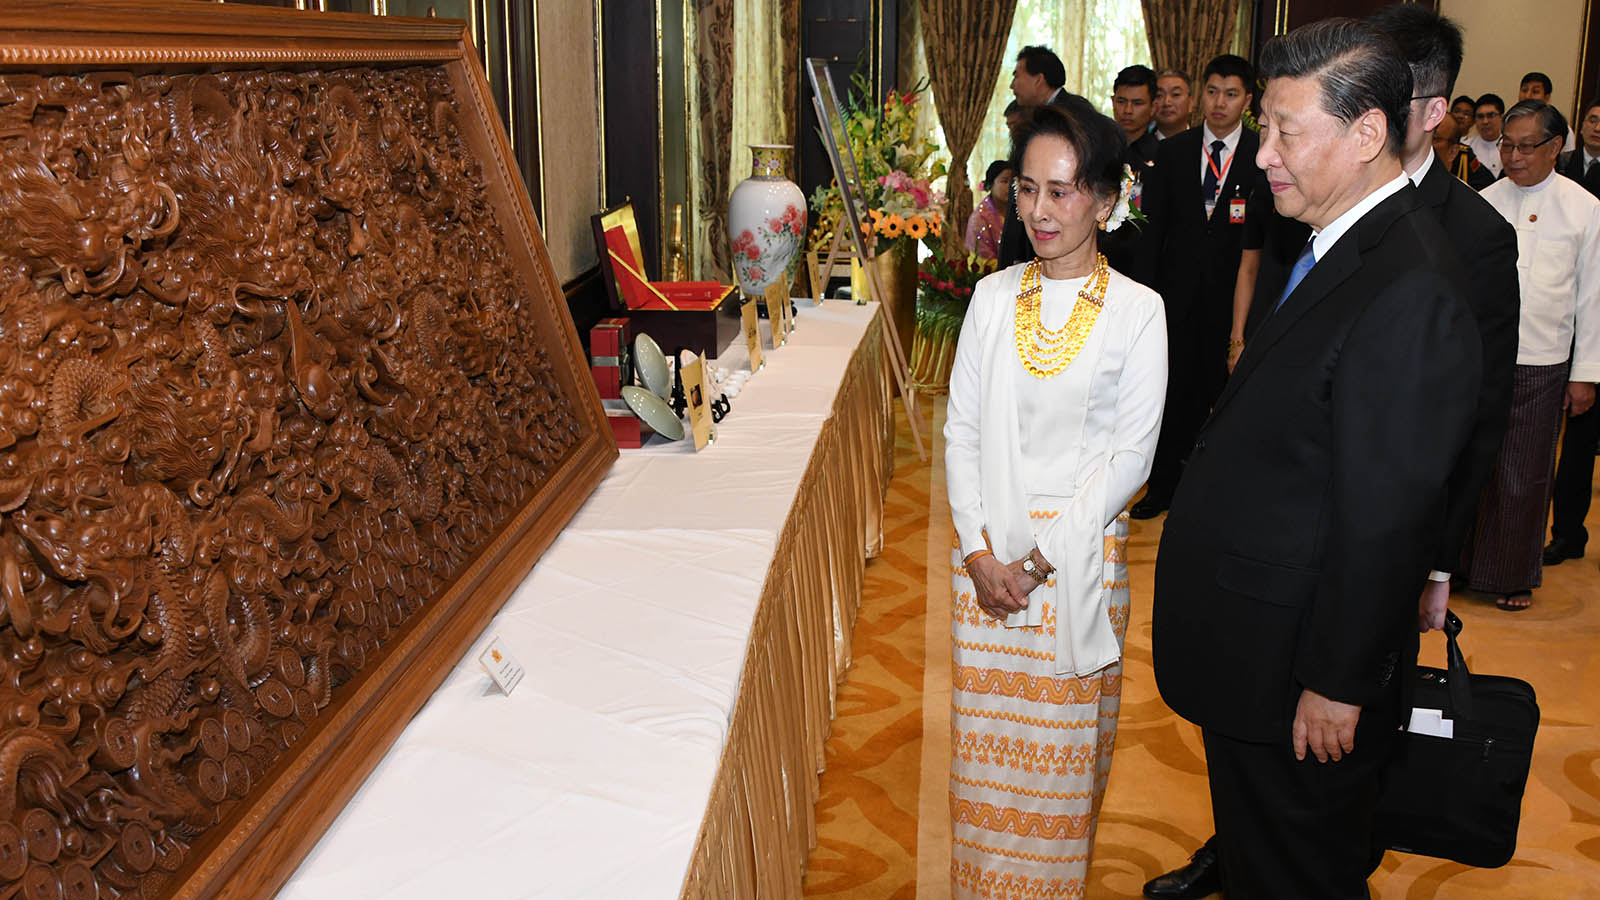 State Counsellor Daw Aung San Suu Kyi and President of the People's Republic of China, Mr Xi Jinping view handicraft displayed at the dinner for President Xi Jinping in Nay Pyi Taw yesterday. Photo: MNA